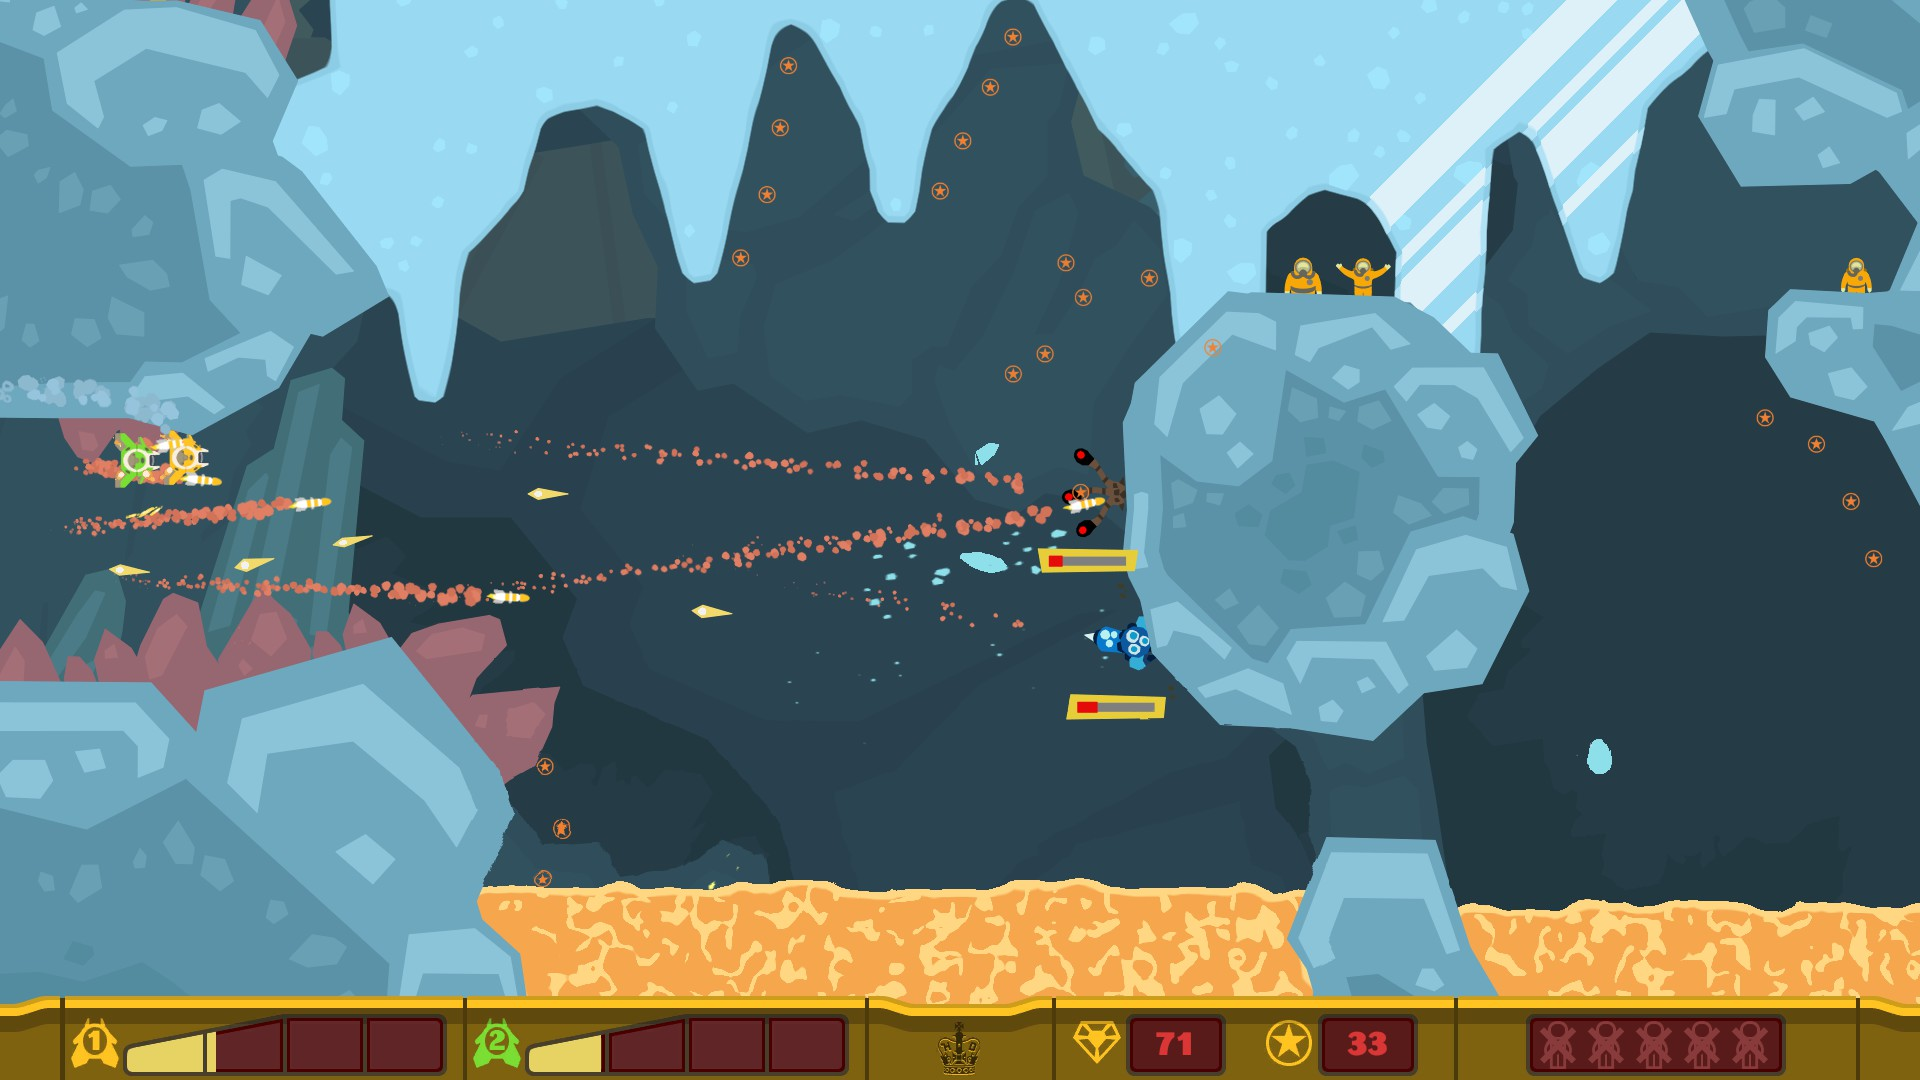 PixelJunk Shooter is now available on PC, MAC and Linux